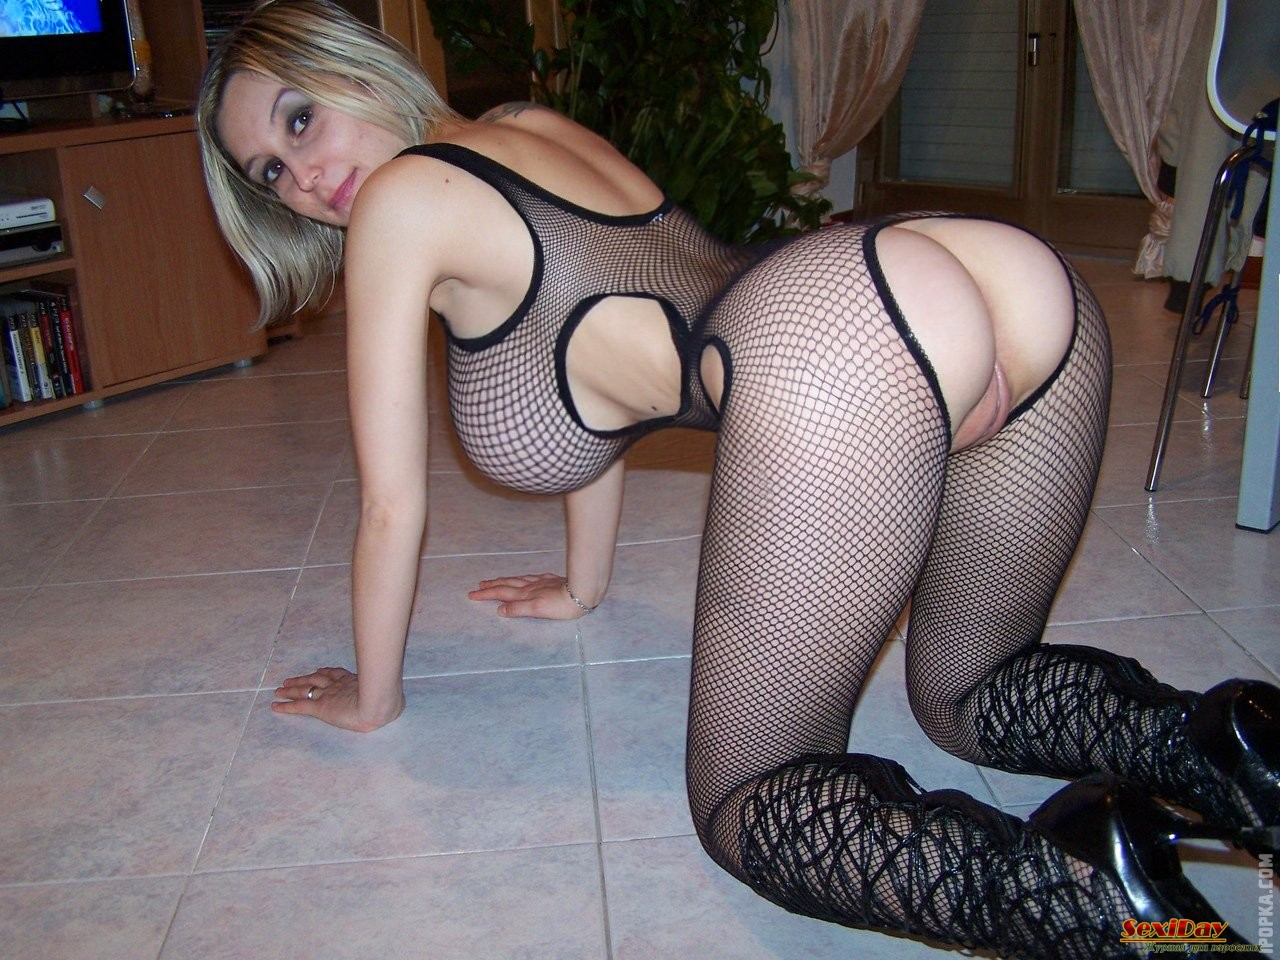 freaky halloween sex party full of tits and ass min